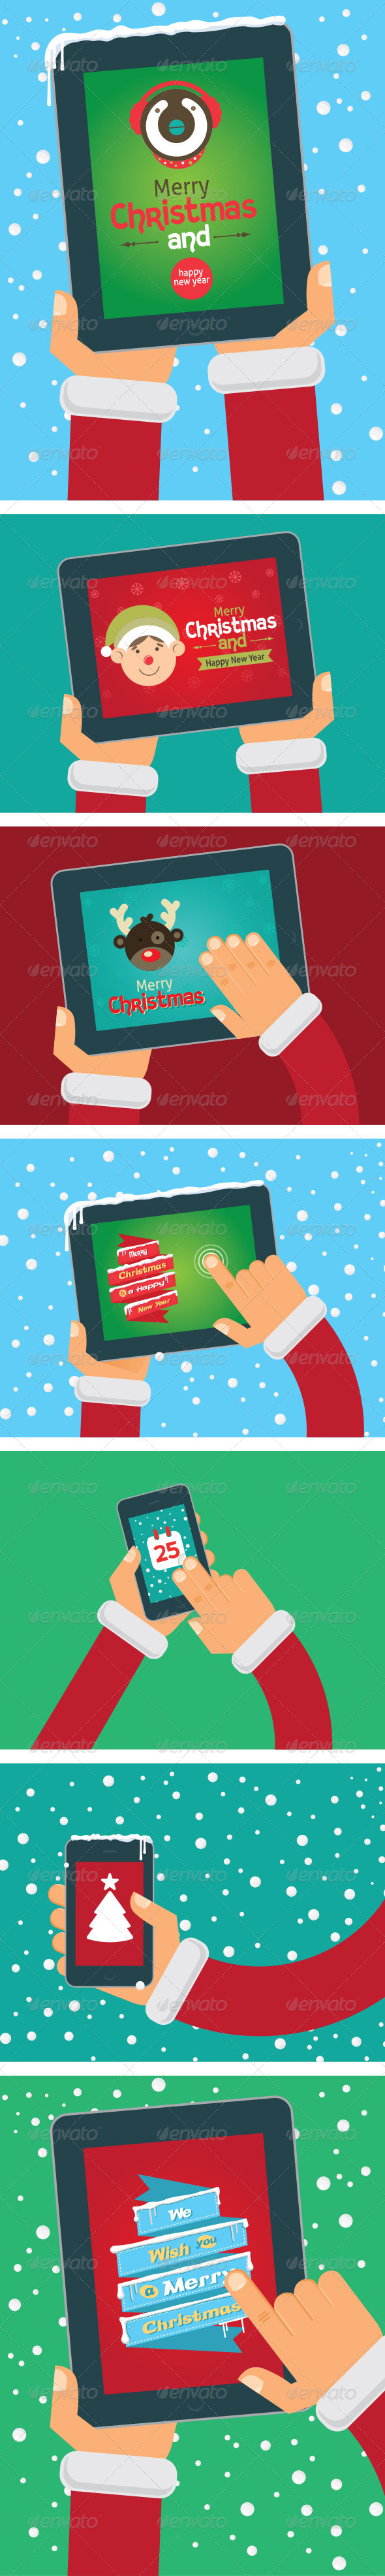 GraphicRiver Vector Christmas Cards on Tablet and Phone 6289121